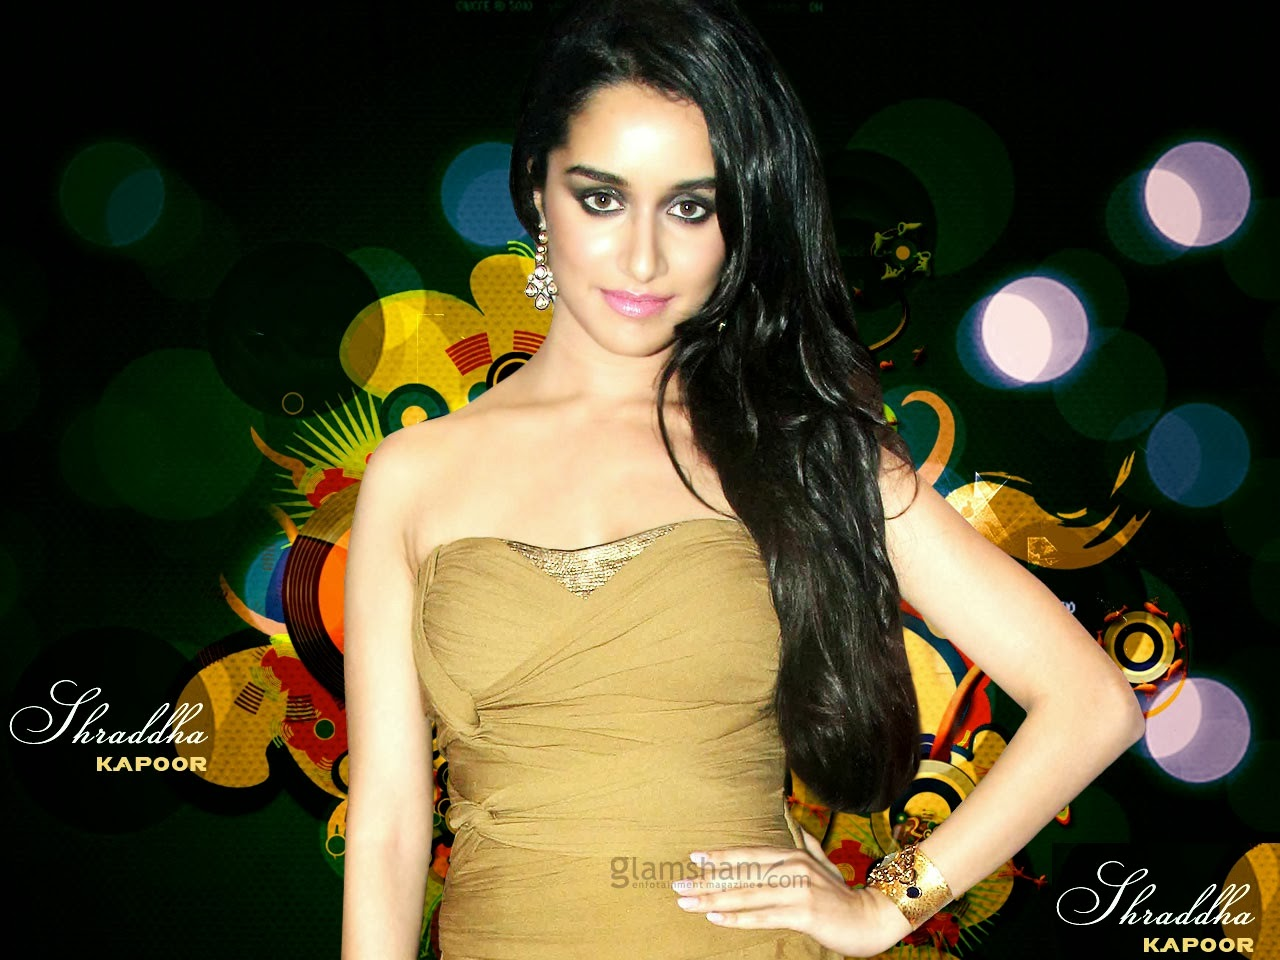 Shraddha Kapoor Hot Images And Hd Wallpapers  Hot Images-8156